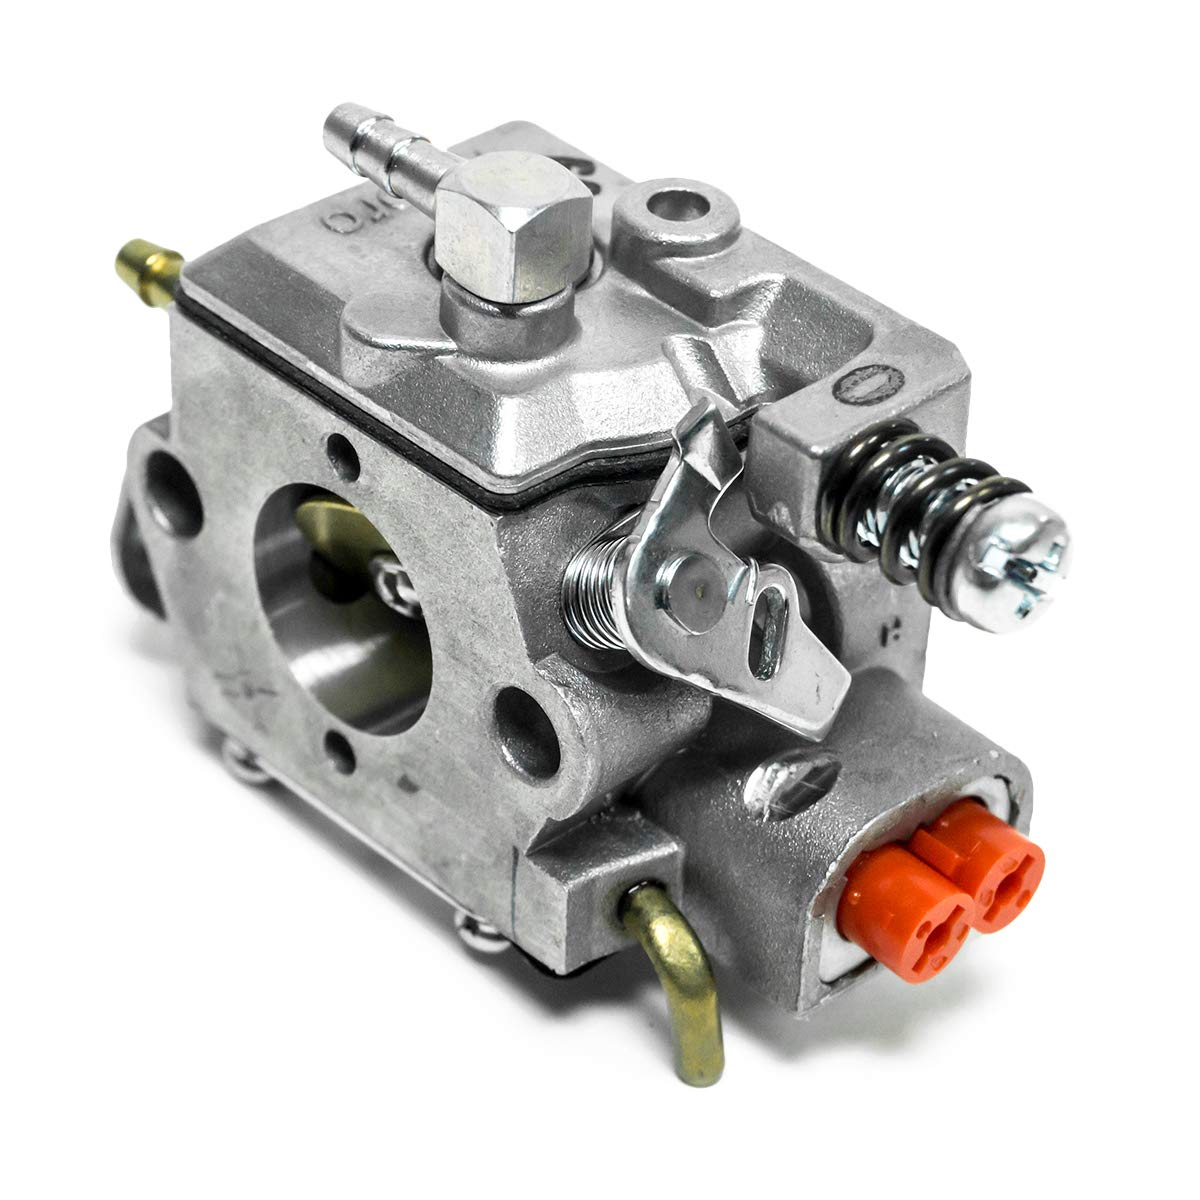 Echo Genuine OEM Carburetor A021001921 A021001920 WT-985 CS-400 CS-370 CS-400F